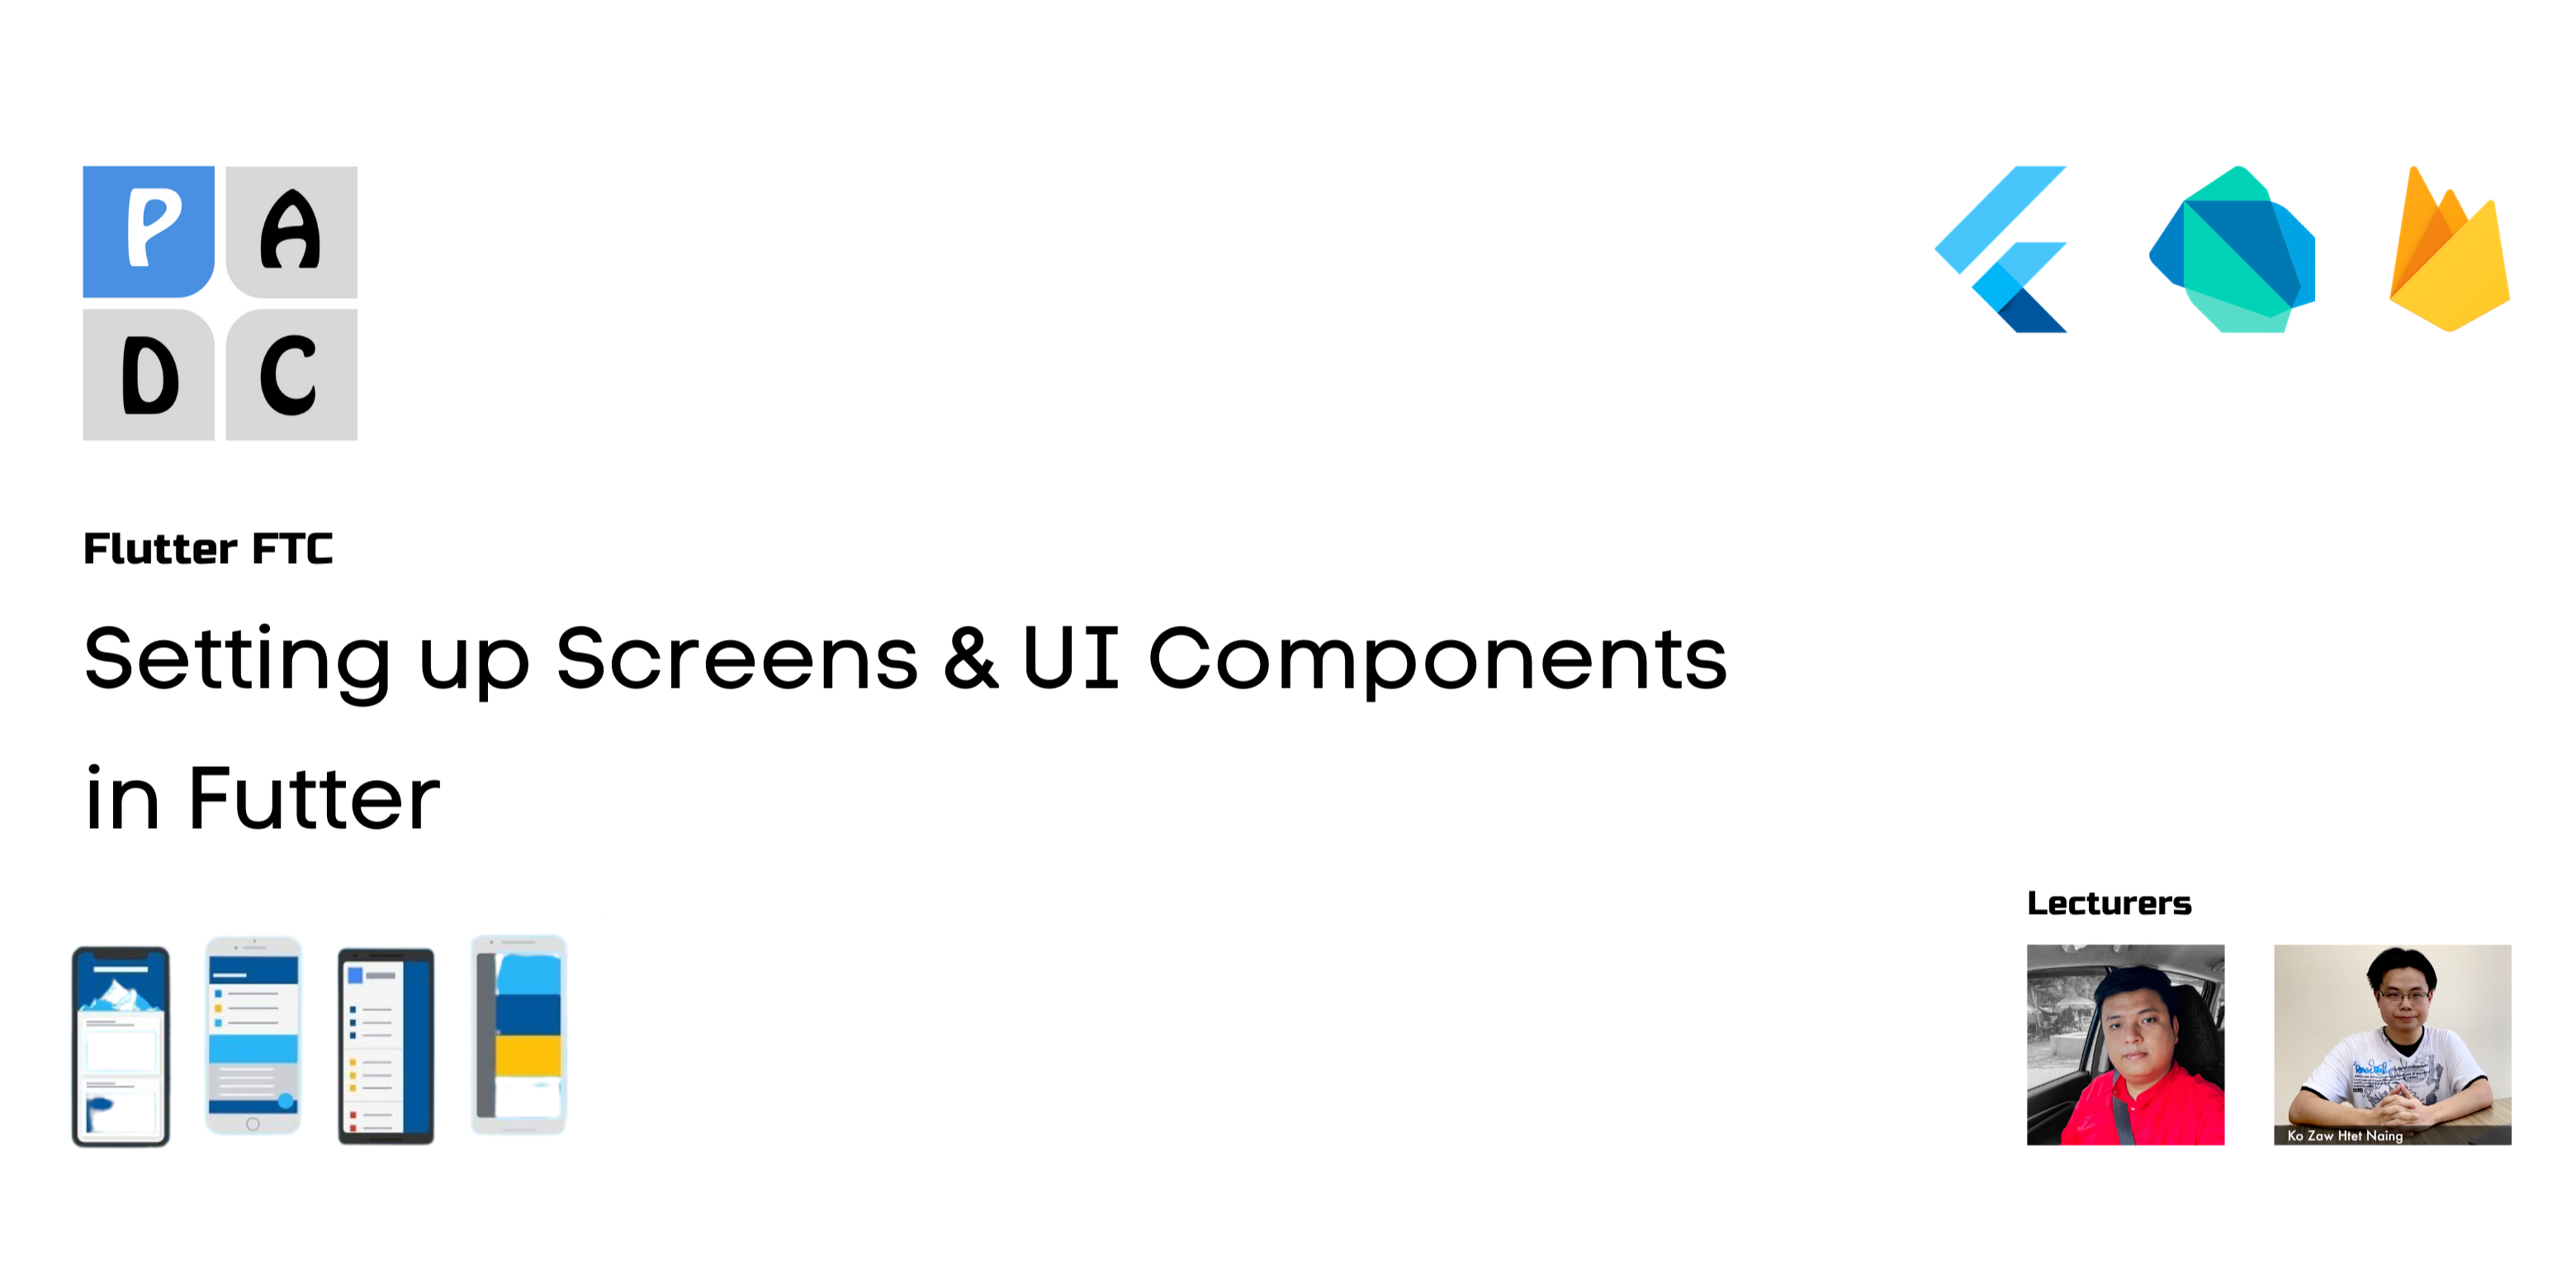 Setting up Screens & UI Components in Flutter